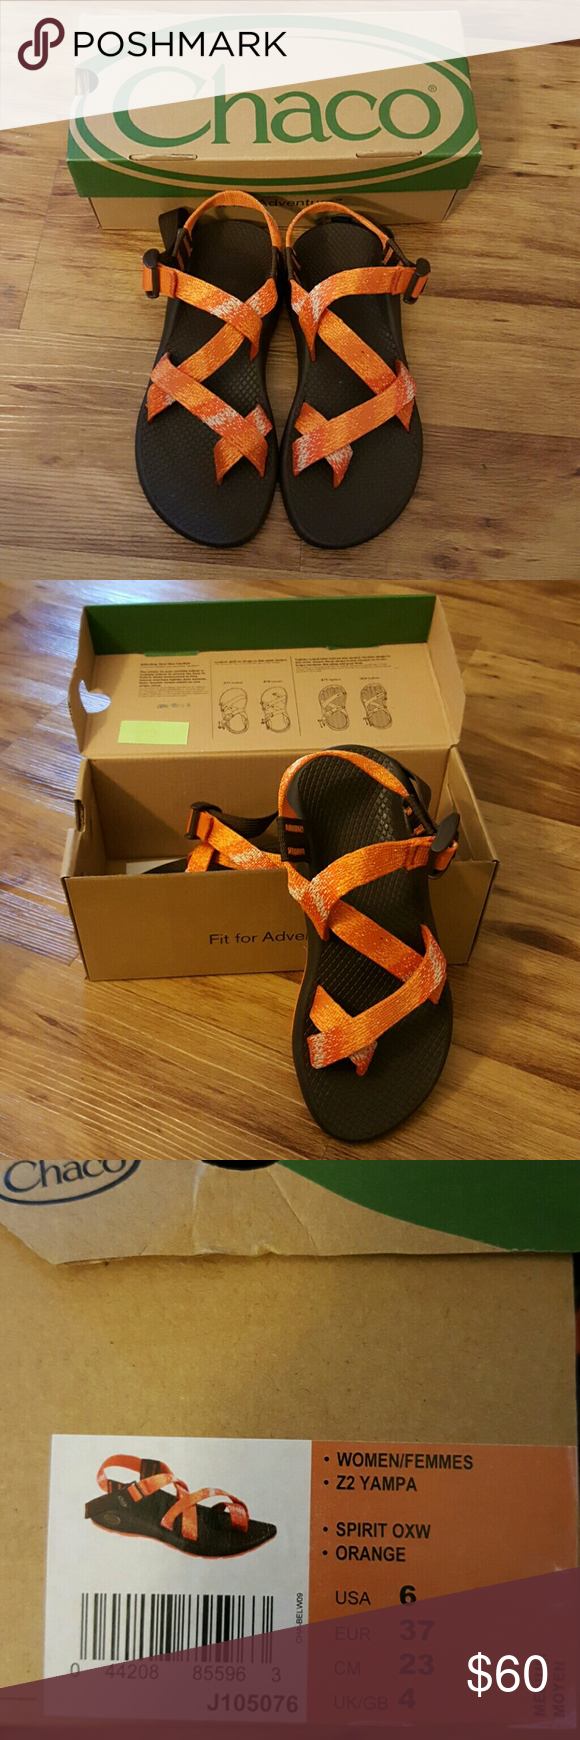 Chacos Sandals Classic Chacos Sandals! Never worn, brand new!! Women's Z2 Yampa Orange US 6 Chaco Shoes Sandals